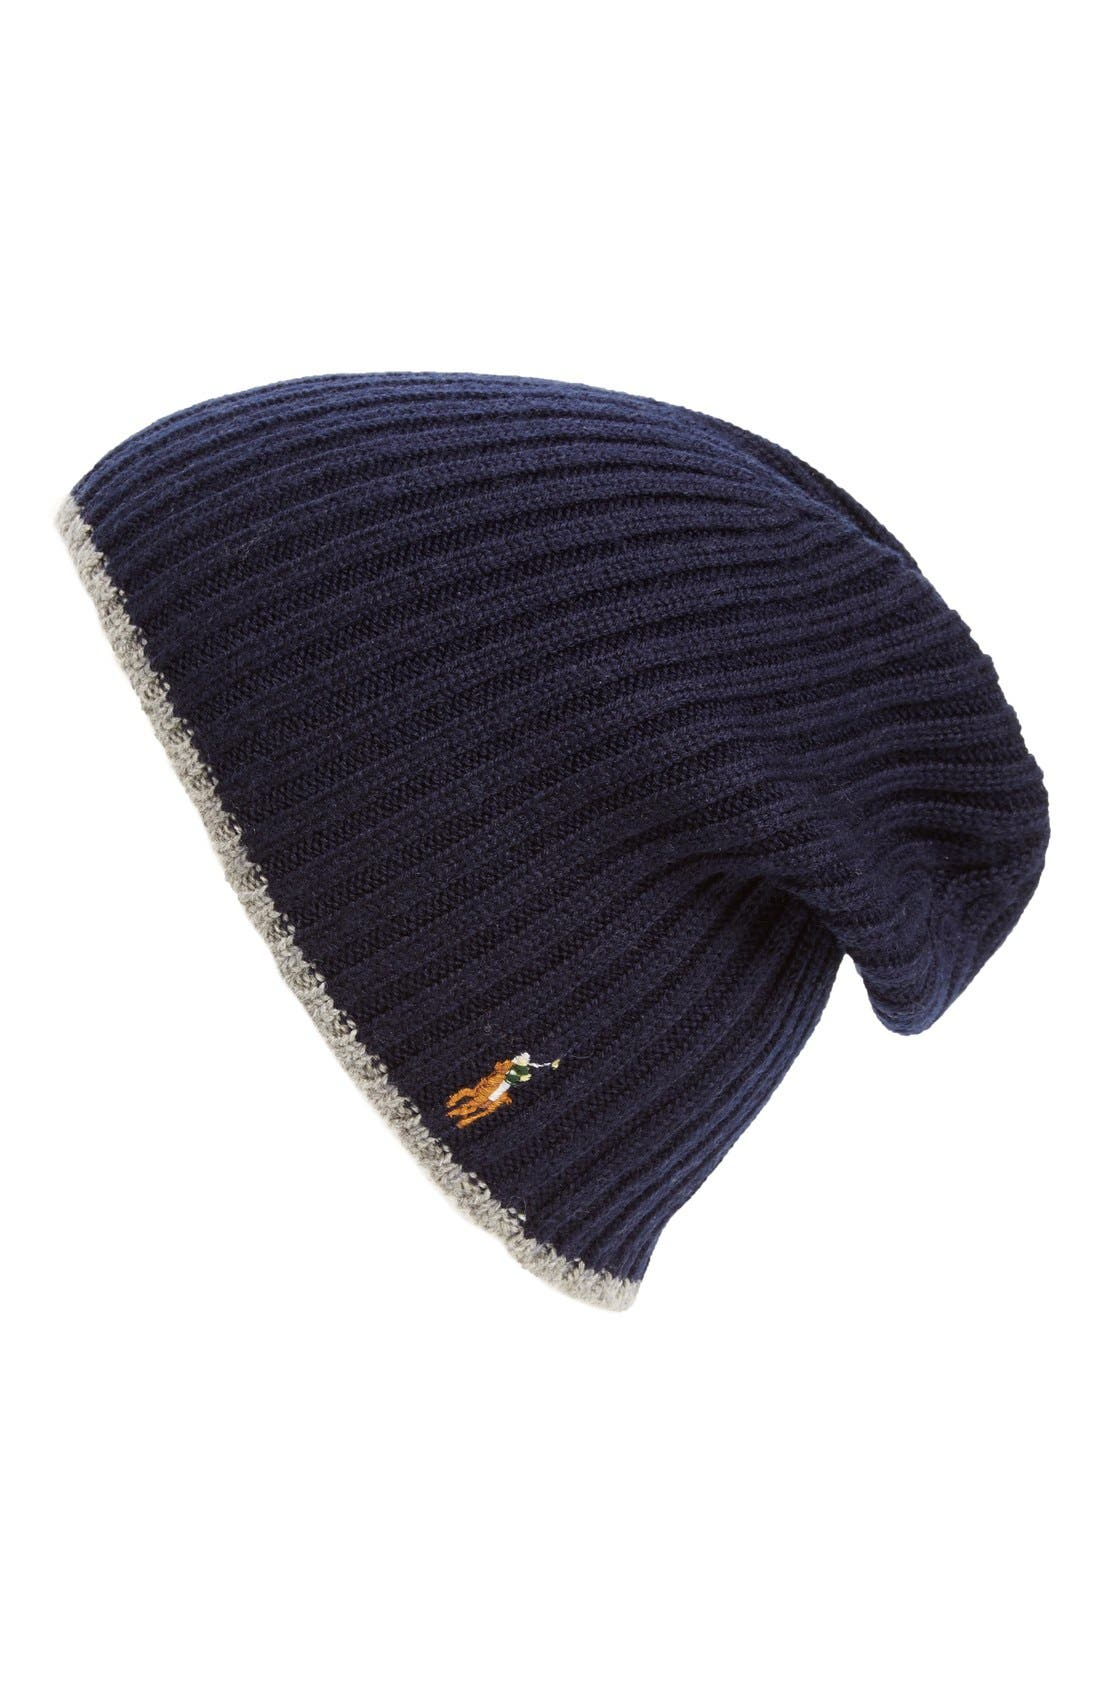 Alternate Image 1 Selected - Polo Ralph Lauren Classic Merino Wool Cap